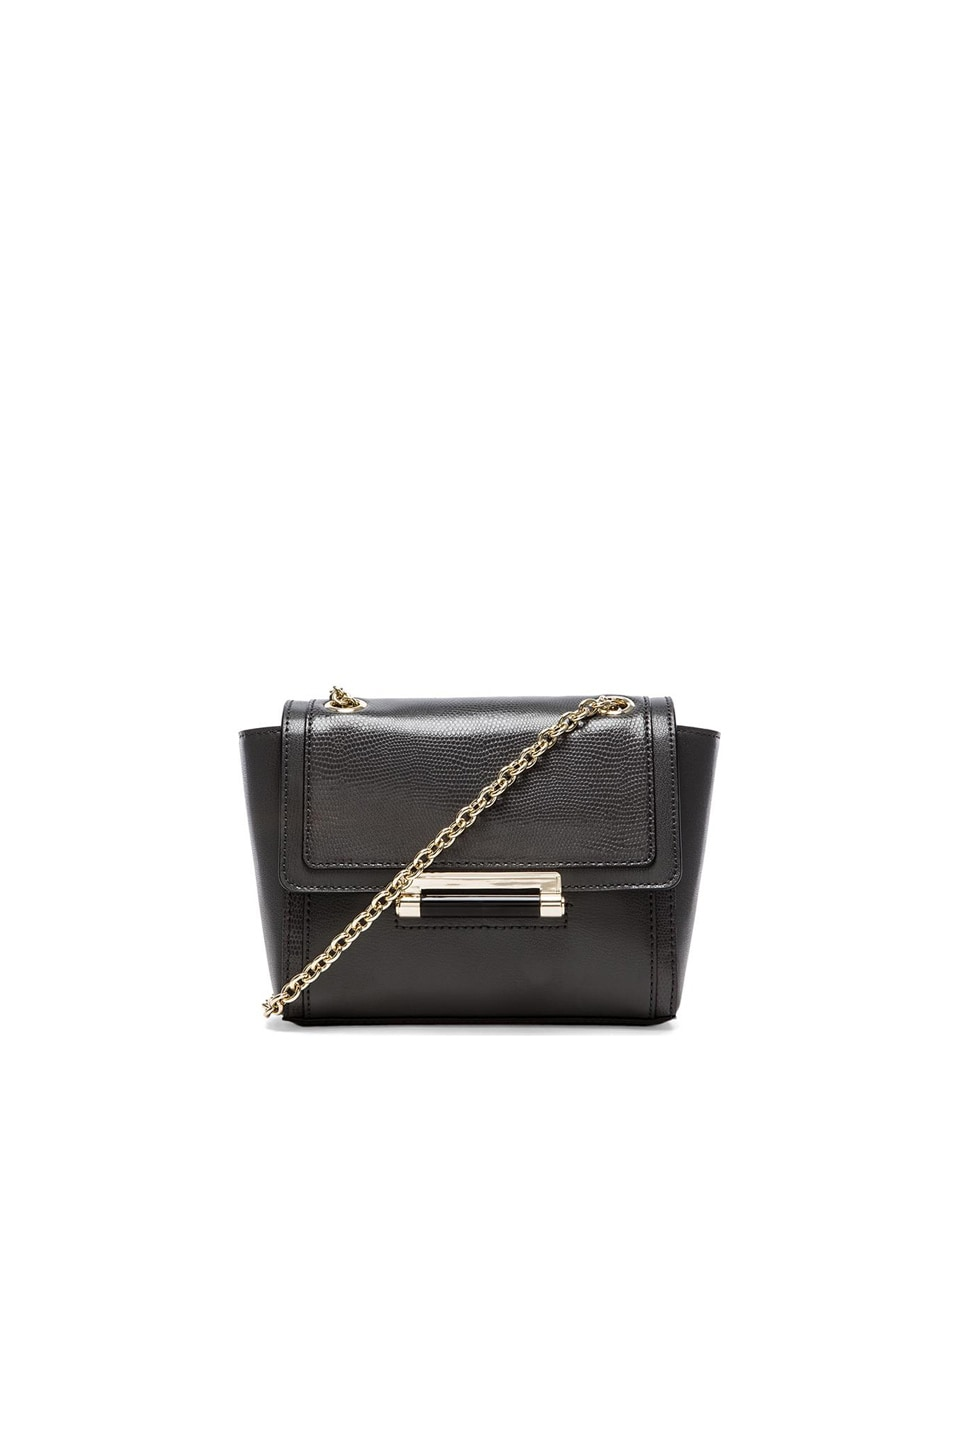 Diane von Furstenberg Mini Shoulder Bag in Flint